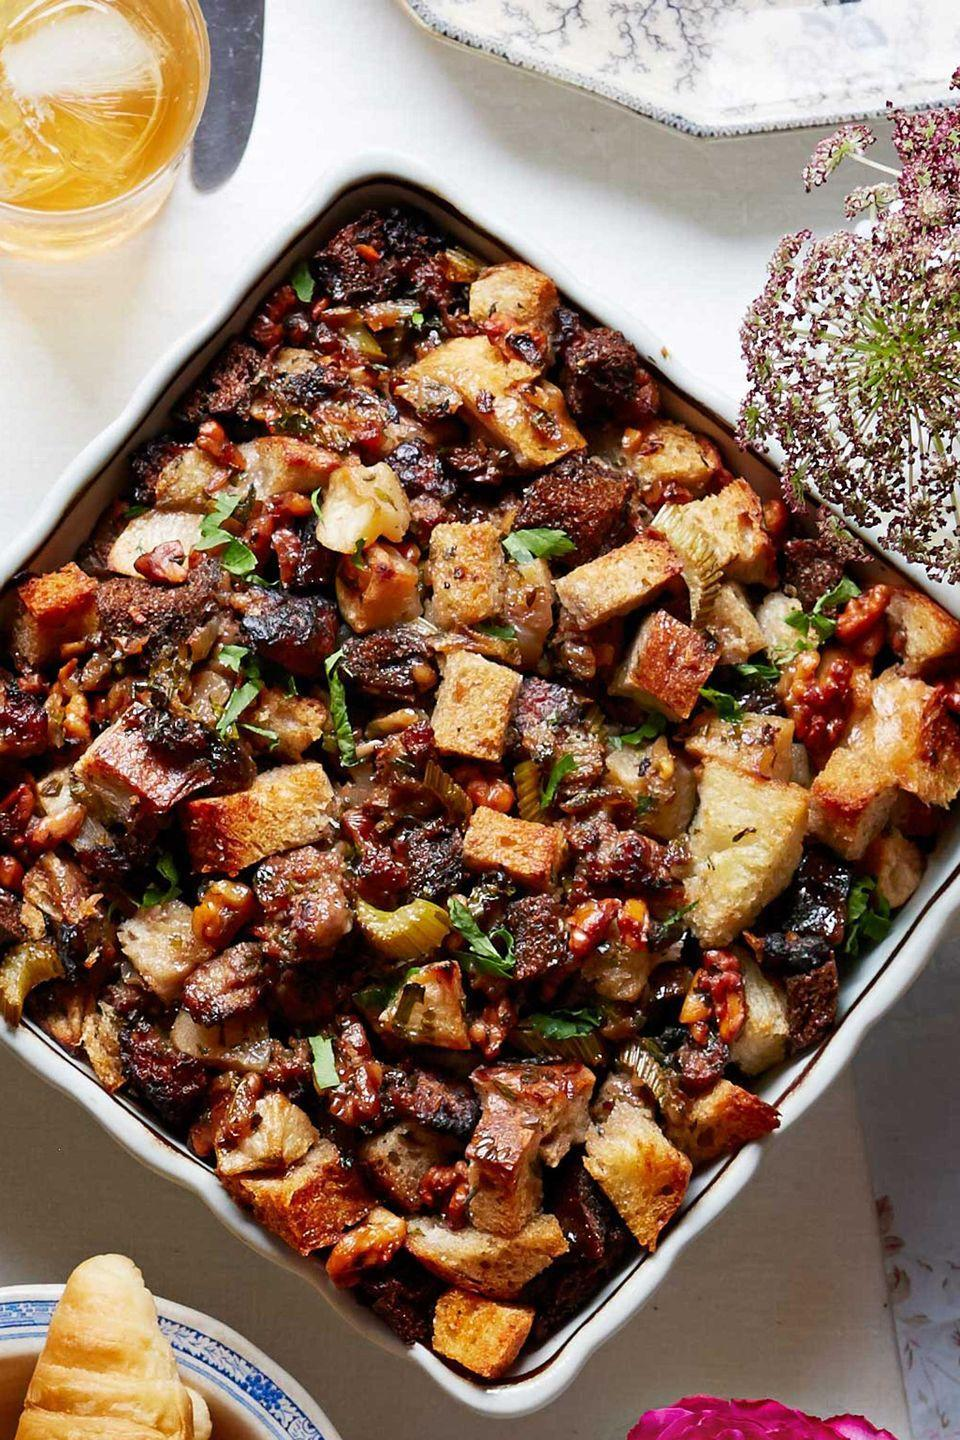 "<p>Stuffing isn't just for November—and this casserole style version is simply too good to pass up. Assemble this casserole up to a day ahead, and simply cover and chill.</p><p><strong><a href=""https://www.countryliving.com/food-drinks/recipes/a5271/apple-walnut-stuffing-recipe-clx1114/"" rel=""nofollow noopener"" target=""_blank"" data-ylk=""slk:Get the recipe"" class=""link rapid-noclick-resp"">Get the recipe</a>.</strong></p><p><strong><a class=""link rapid-noclick-resp"" href=""https://www.amazon.com/Wilton-Recipe-Non-Stick-9-Inch-Covered/dp/B07D9Z7PDC/?tag=syn-yahoo-20&ascsubtag=%5Bartid%7C10050.g.34554232%5Bsrc%7Cyahoo-us"" rel=""nofollow noopener"" target=""_blank"" data-ylk=""slk:SHOP BAKING PANS"">SHOP BAKING PANS</a><br></strong></p>"